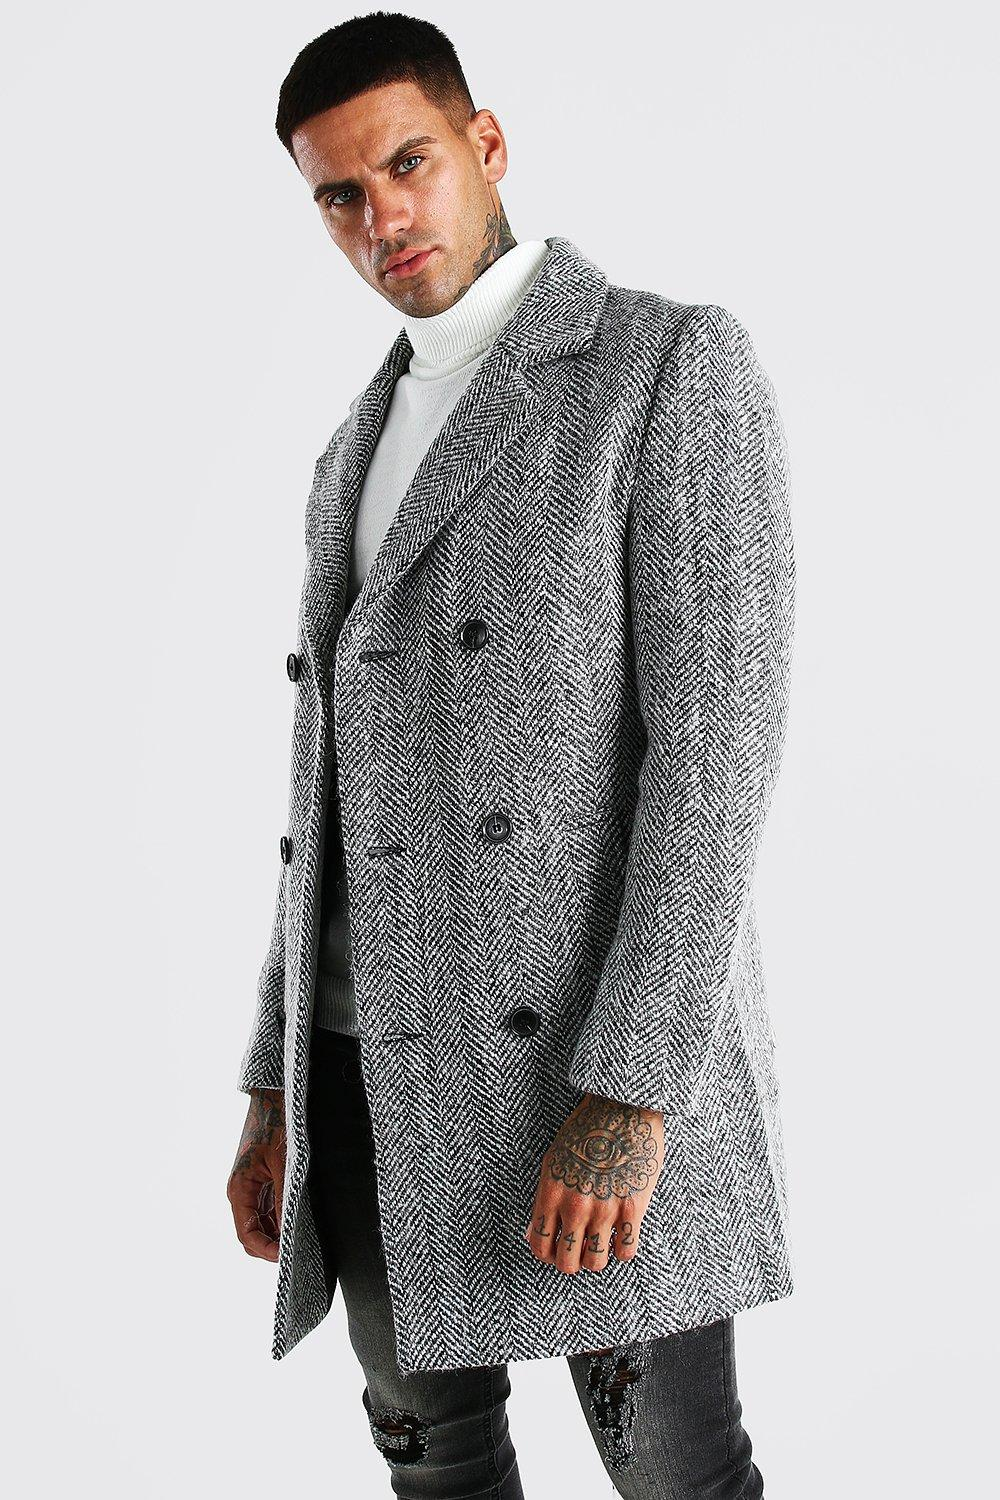 Men's Vintage Jackets & Coats Mens Wool Blend Harrington Double Breasted Overcoat - Grey $57.00 AT vintagedancer.com